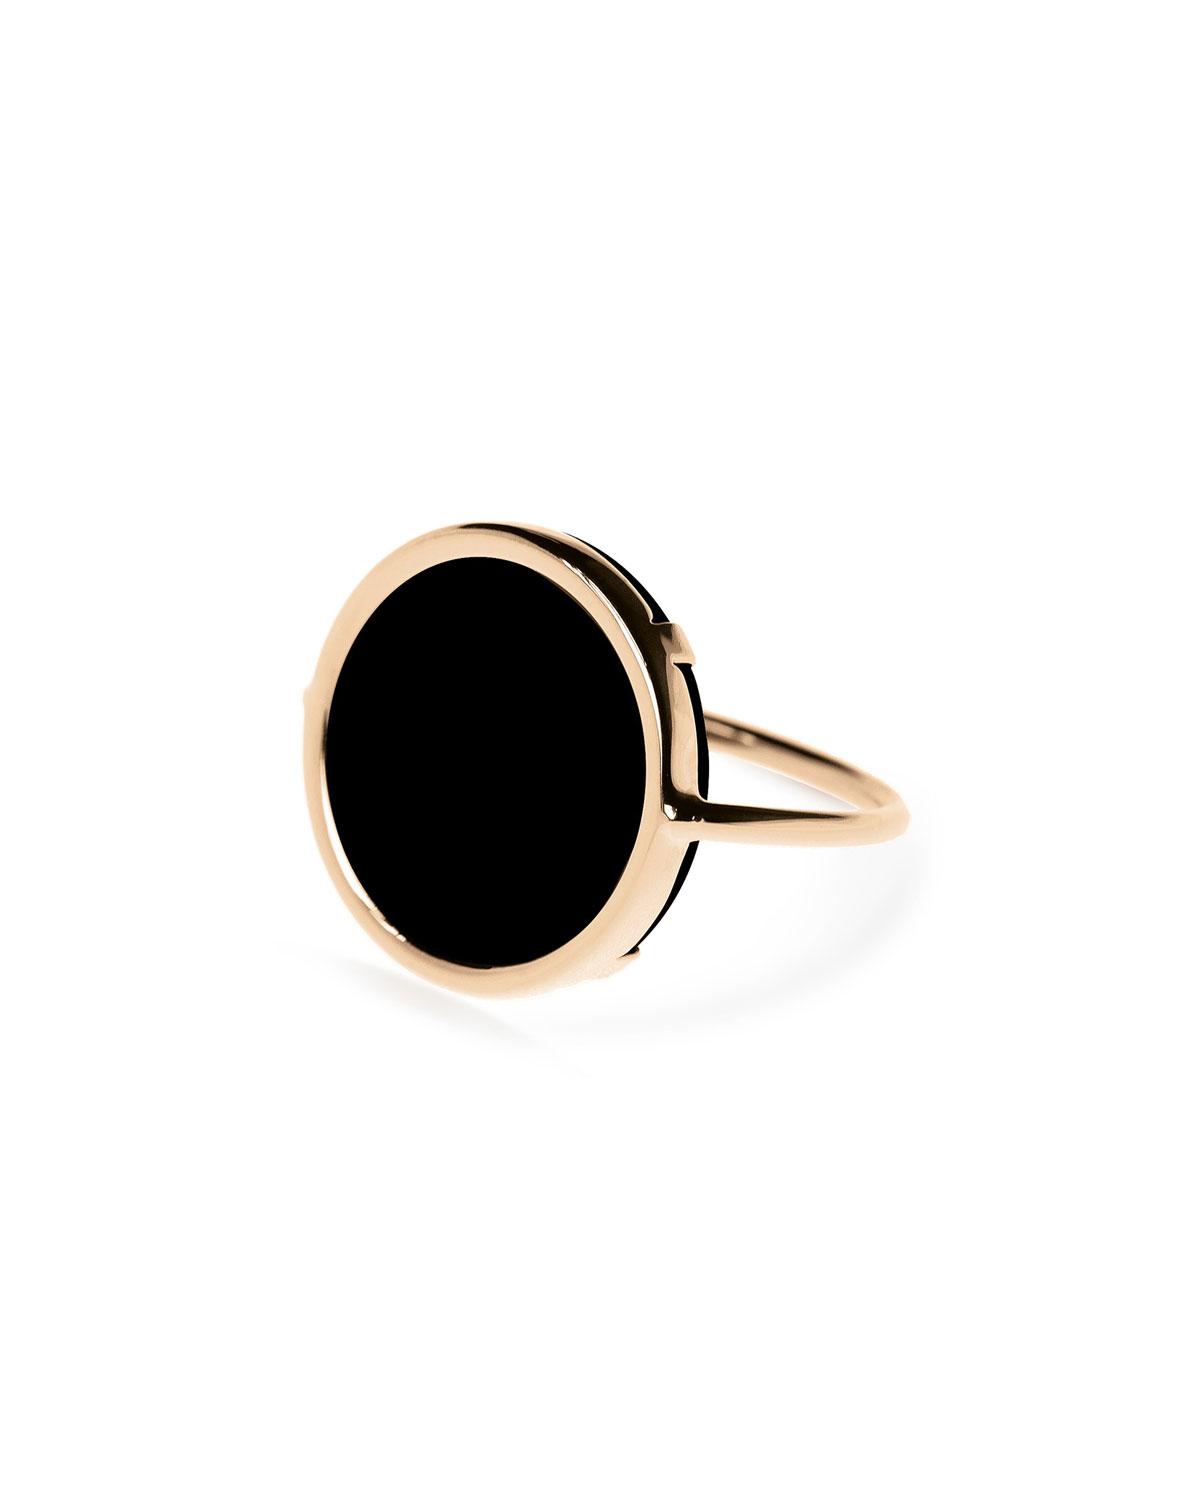 18k Rose Gold Black Onyx Disc Ring, Size 6 by Ginette Ny